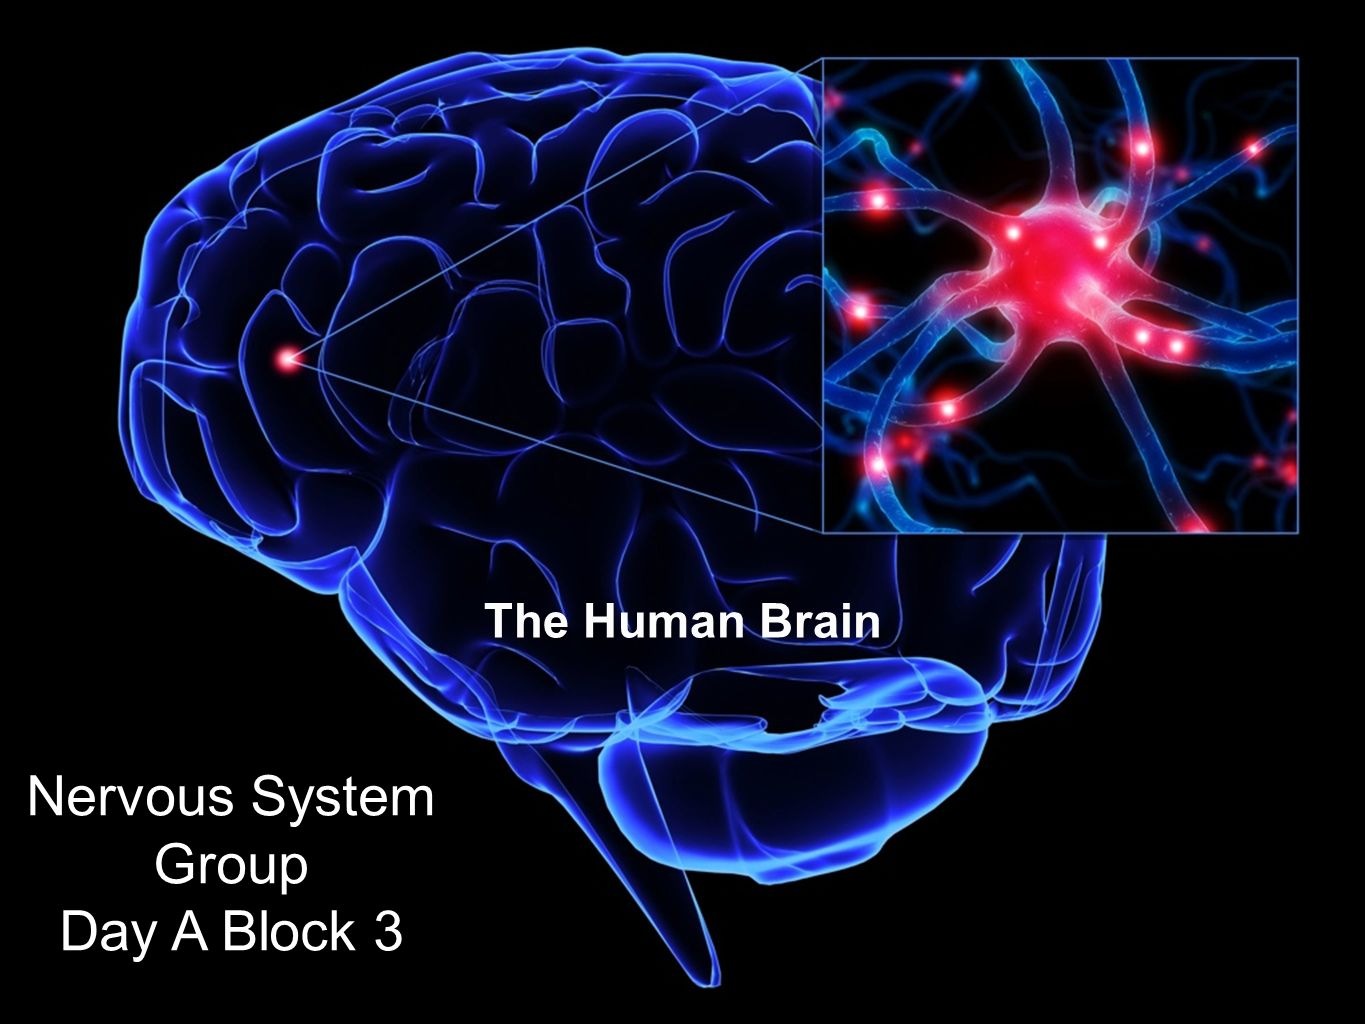 The Human Brain Nervous System Group Day A Block ppt download